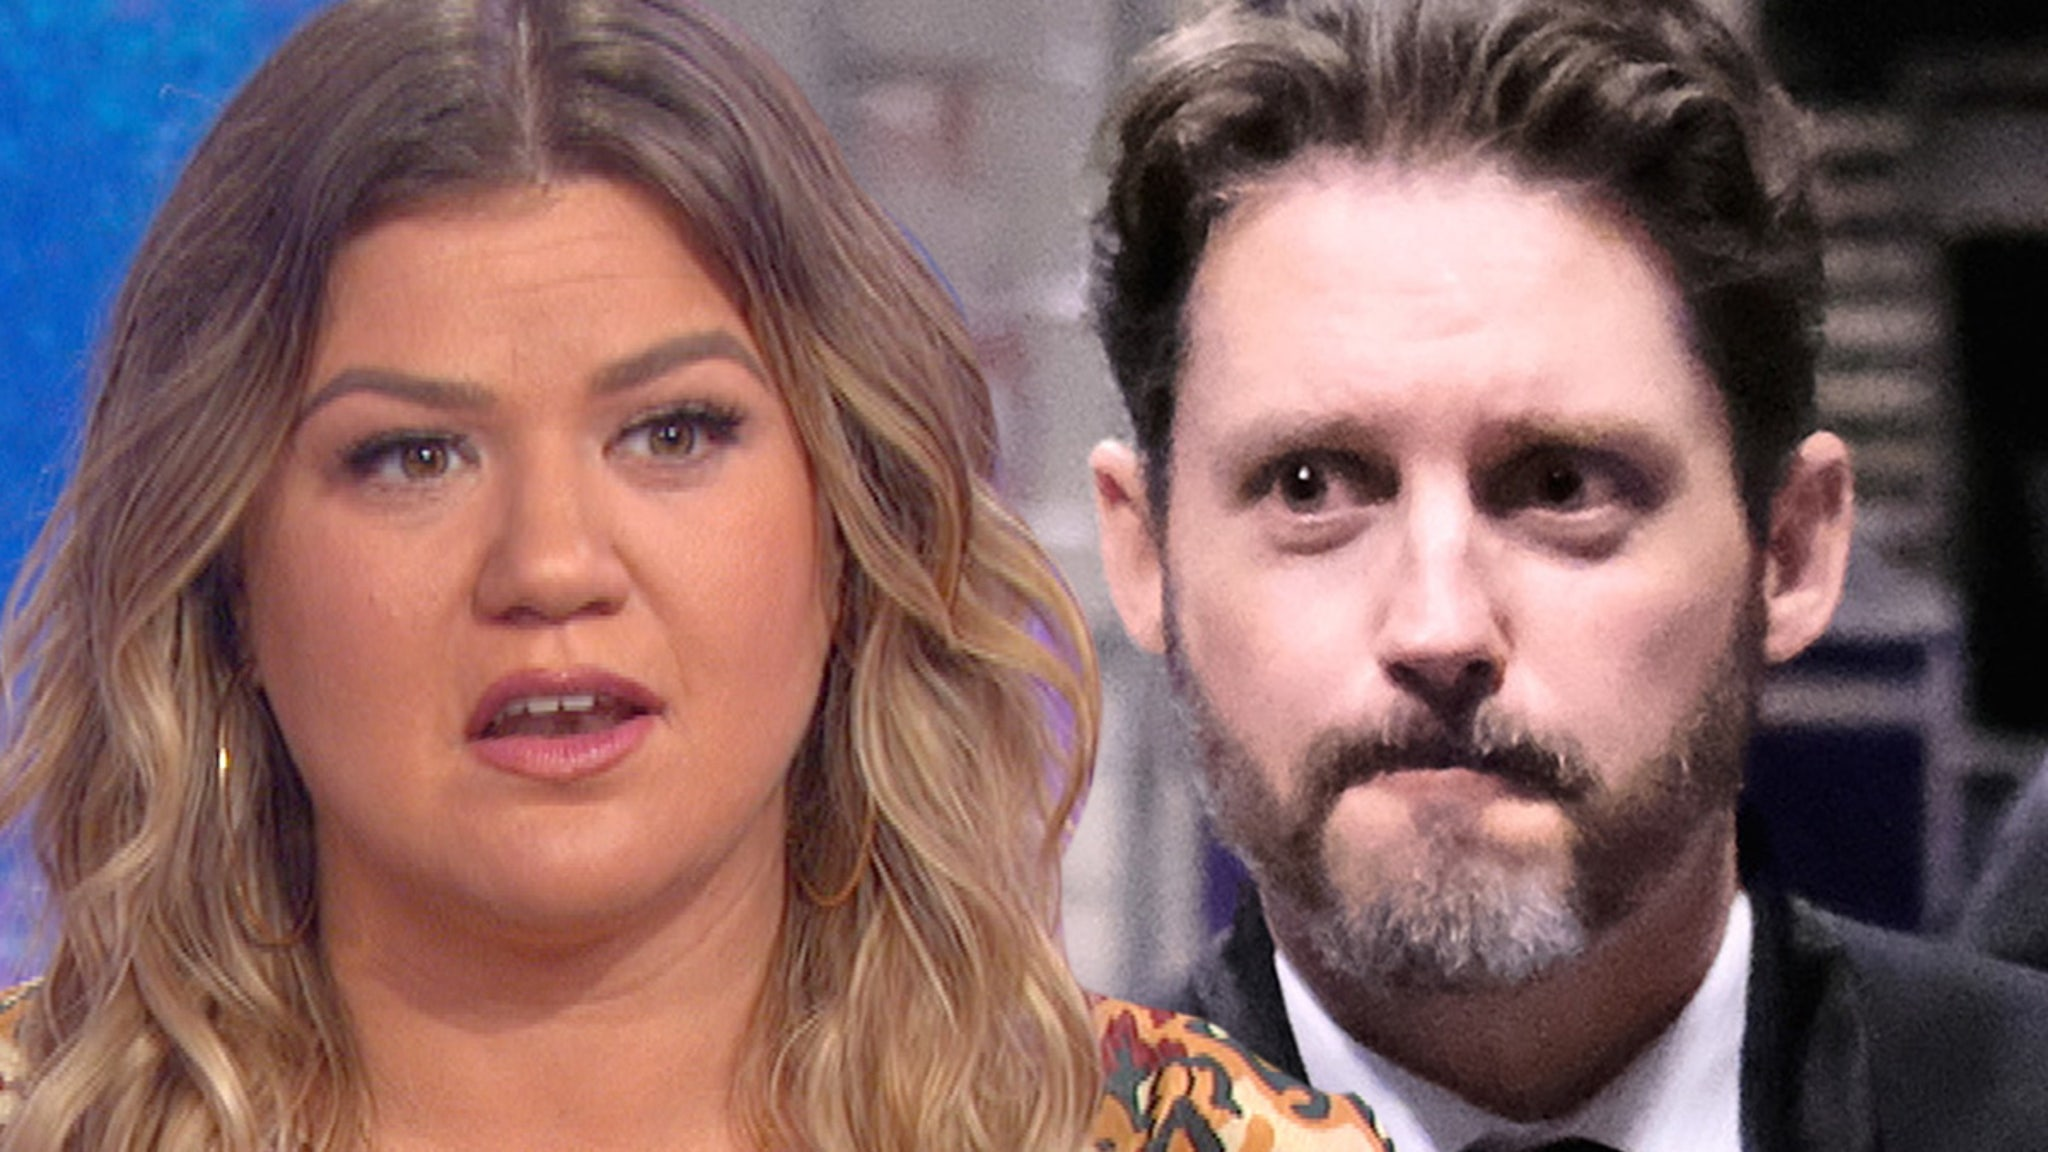 Kelly Clarkson Asks Judge to Declare Her Legally Single Amid Divorce – TMZ